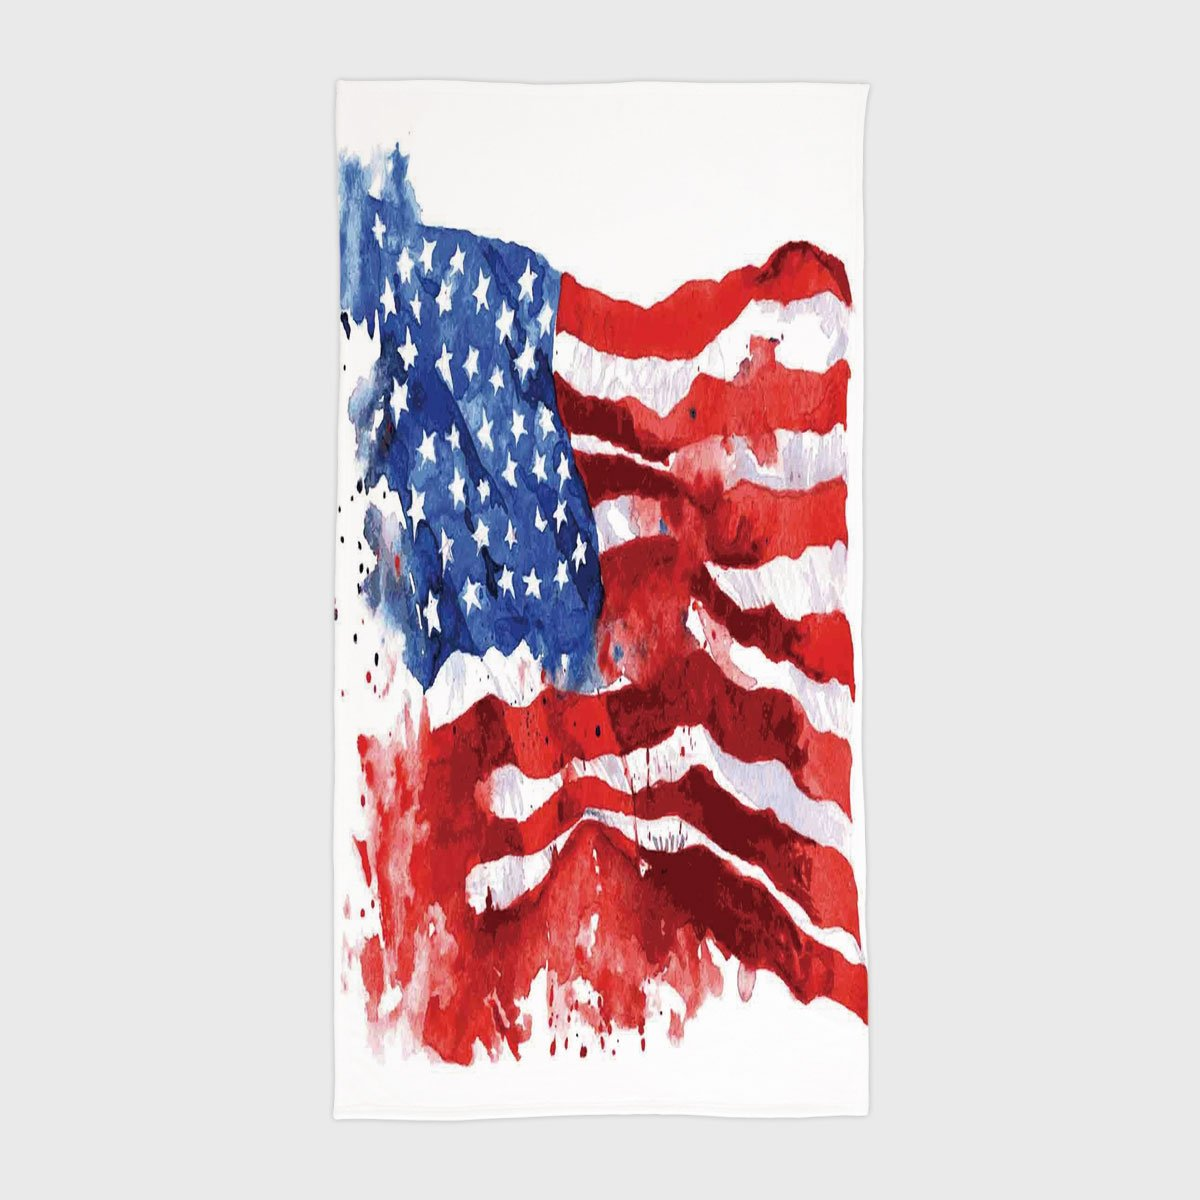 iPrint Cotton Microfiber Hotel SPA Beach Pool Bath Hand Towel,American,Flag of America Watercolor Splash National Independence Symbol Abstract Art,Red Blue White,for Kids, Teens, and Adults by iPrint (Image #1)